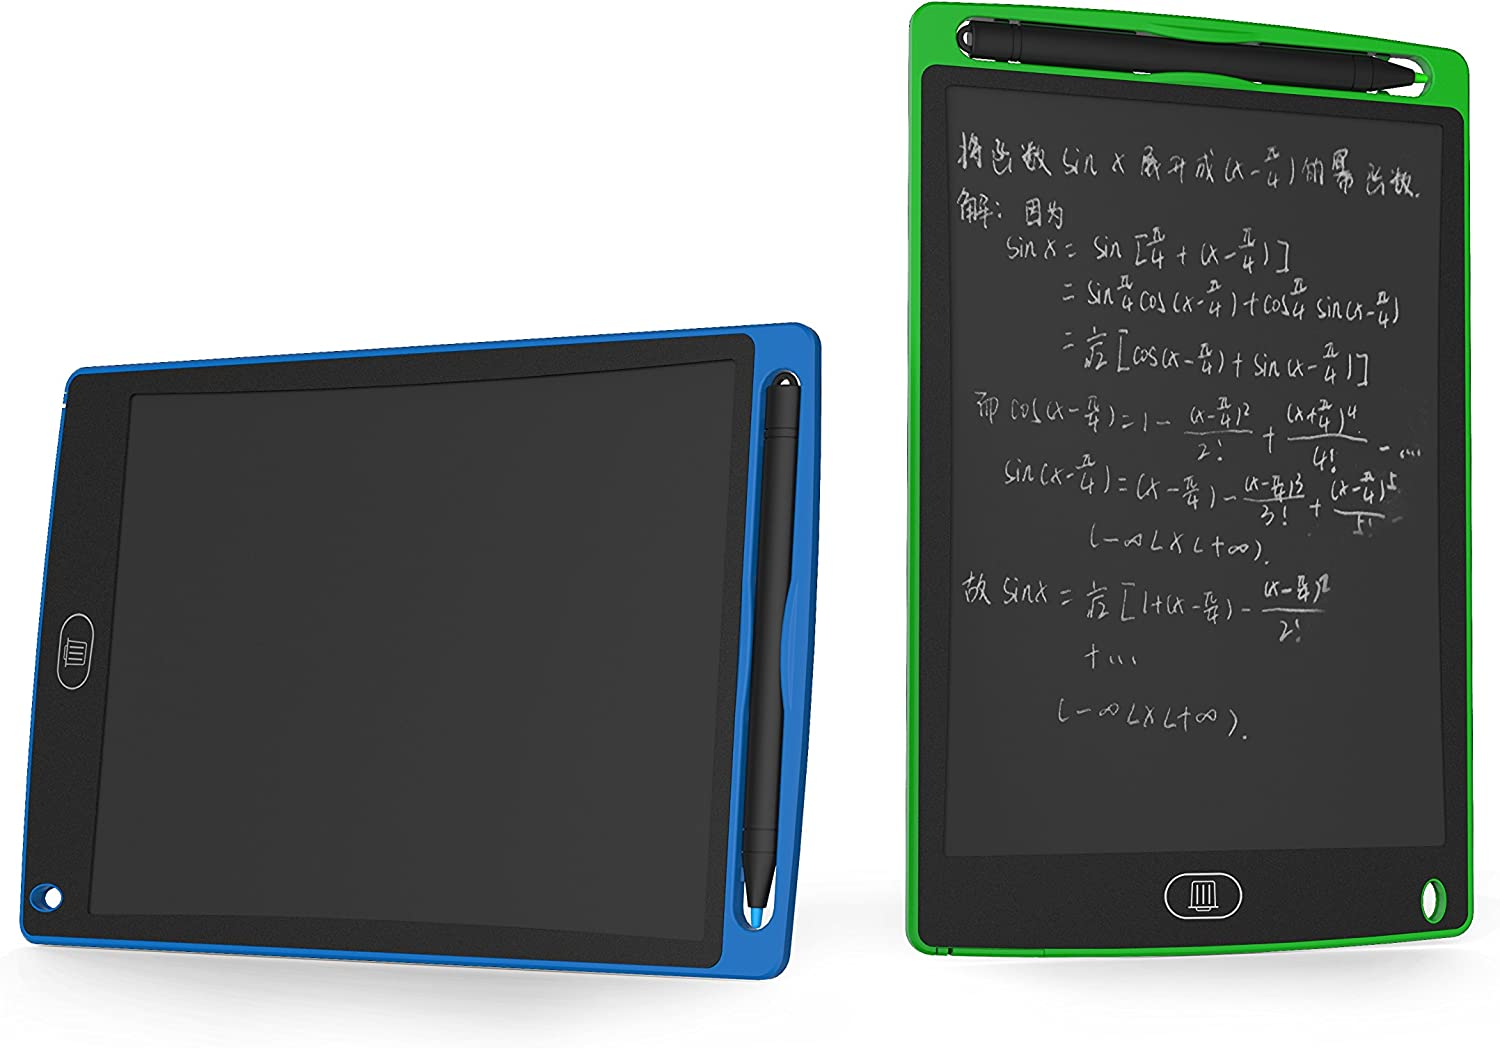 8.5-Inch LCD Writing tablet-Can Be Used as office Whiteboard Bulletin Board Kitchen Memo Notice Fridge Board Large Daily Planner Gifts for kids(Black